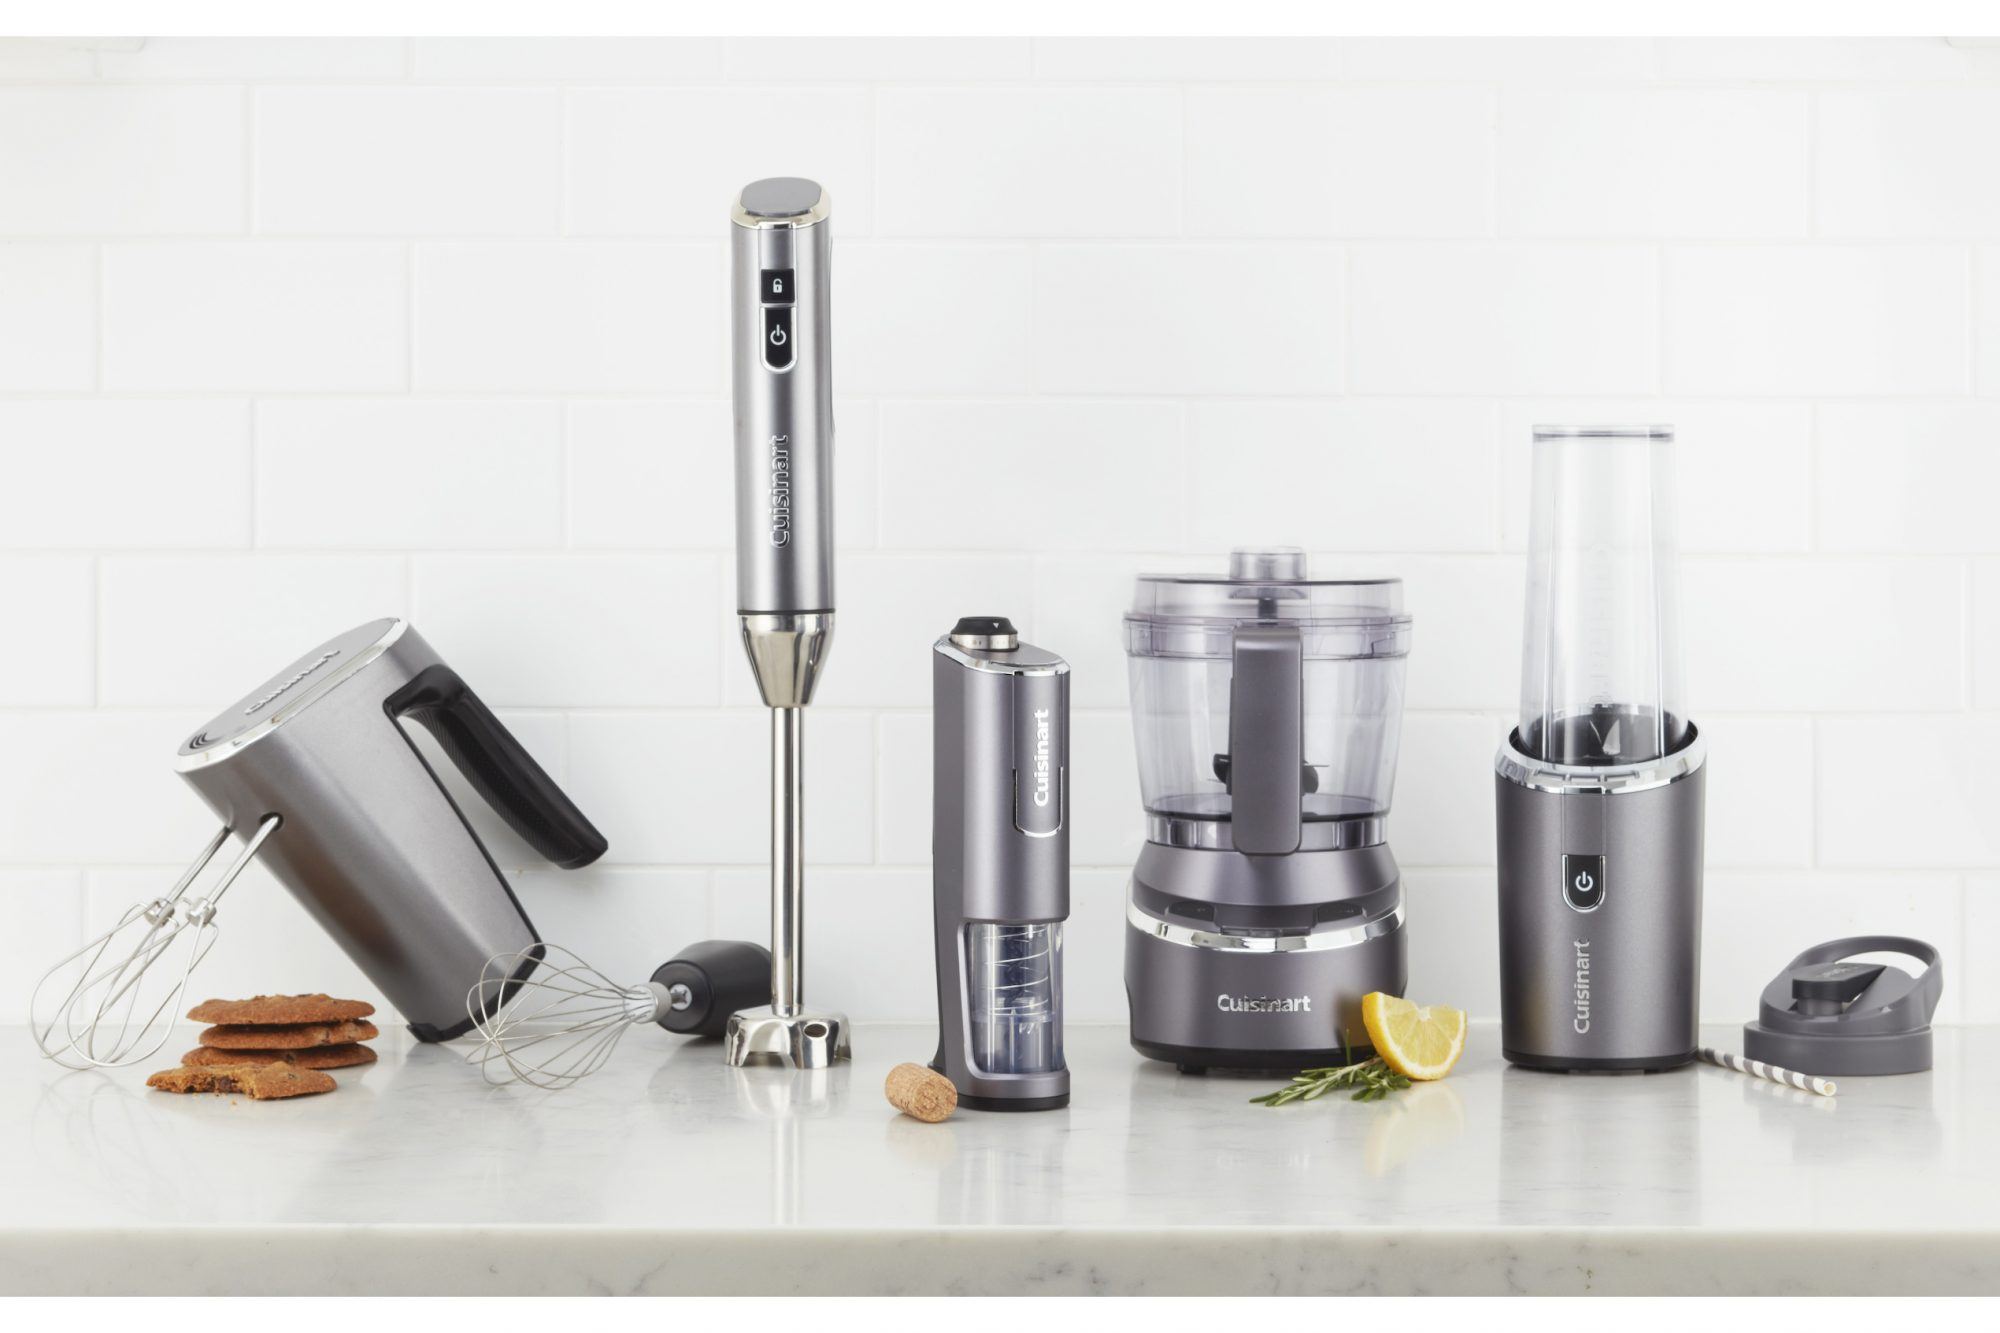 cuisinart EvolutionX cordless appliance line in front of a tiled background on a kitchen counter